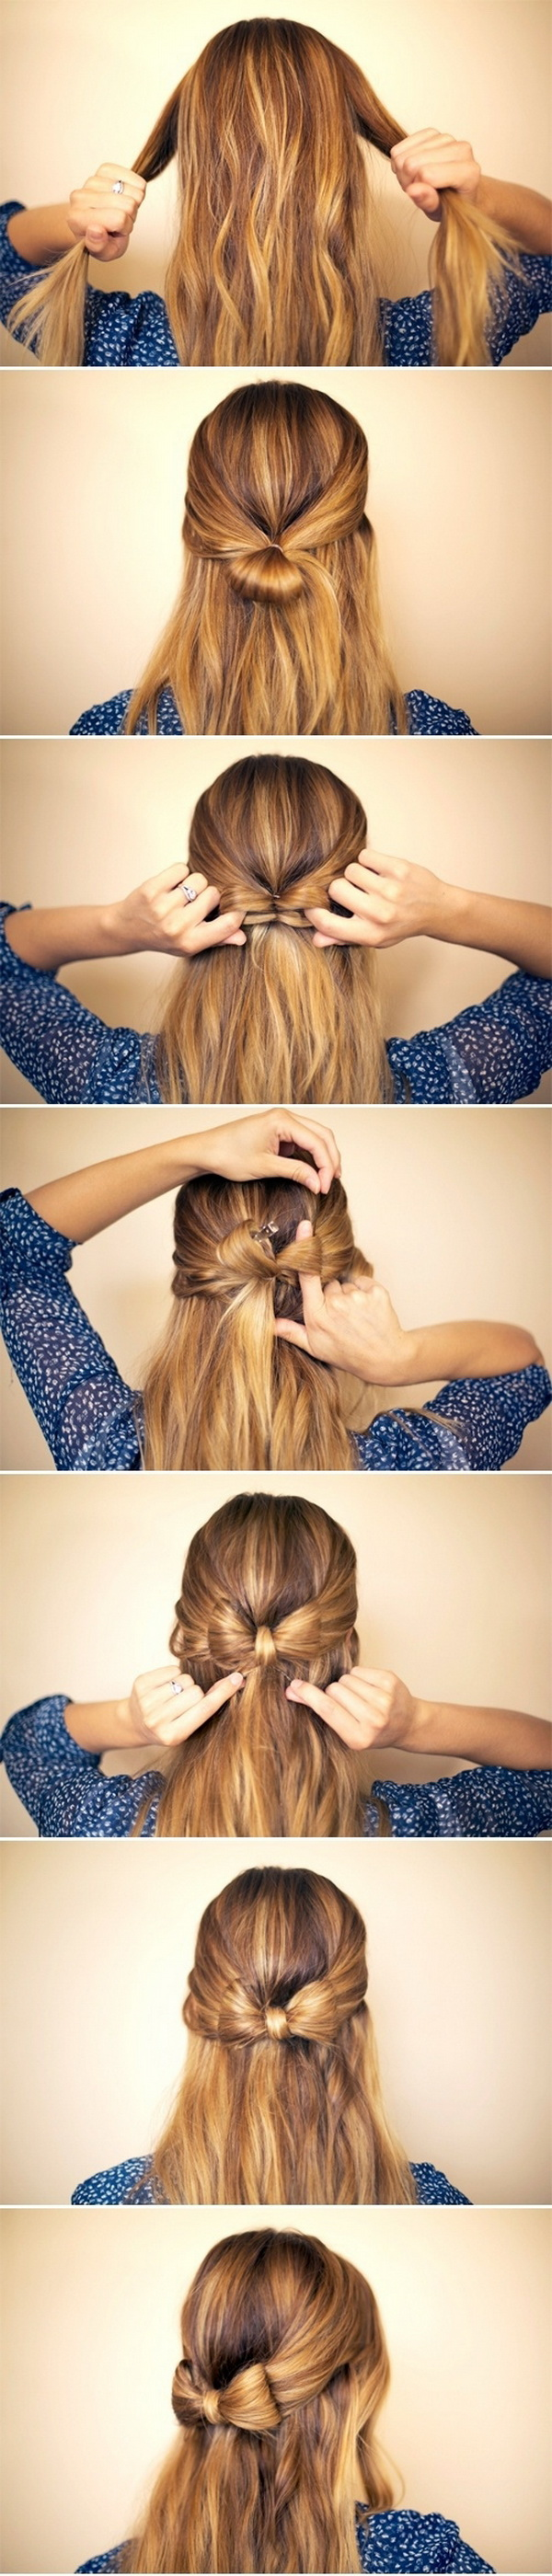 Half Up Half Down Wedding Hairstyles.